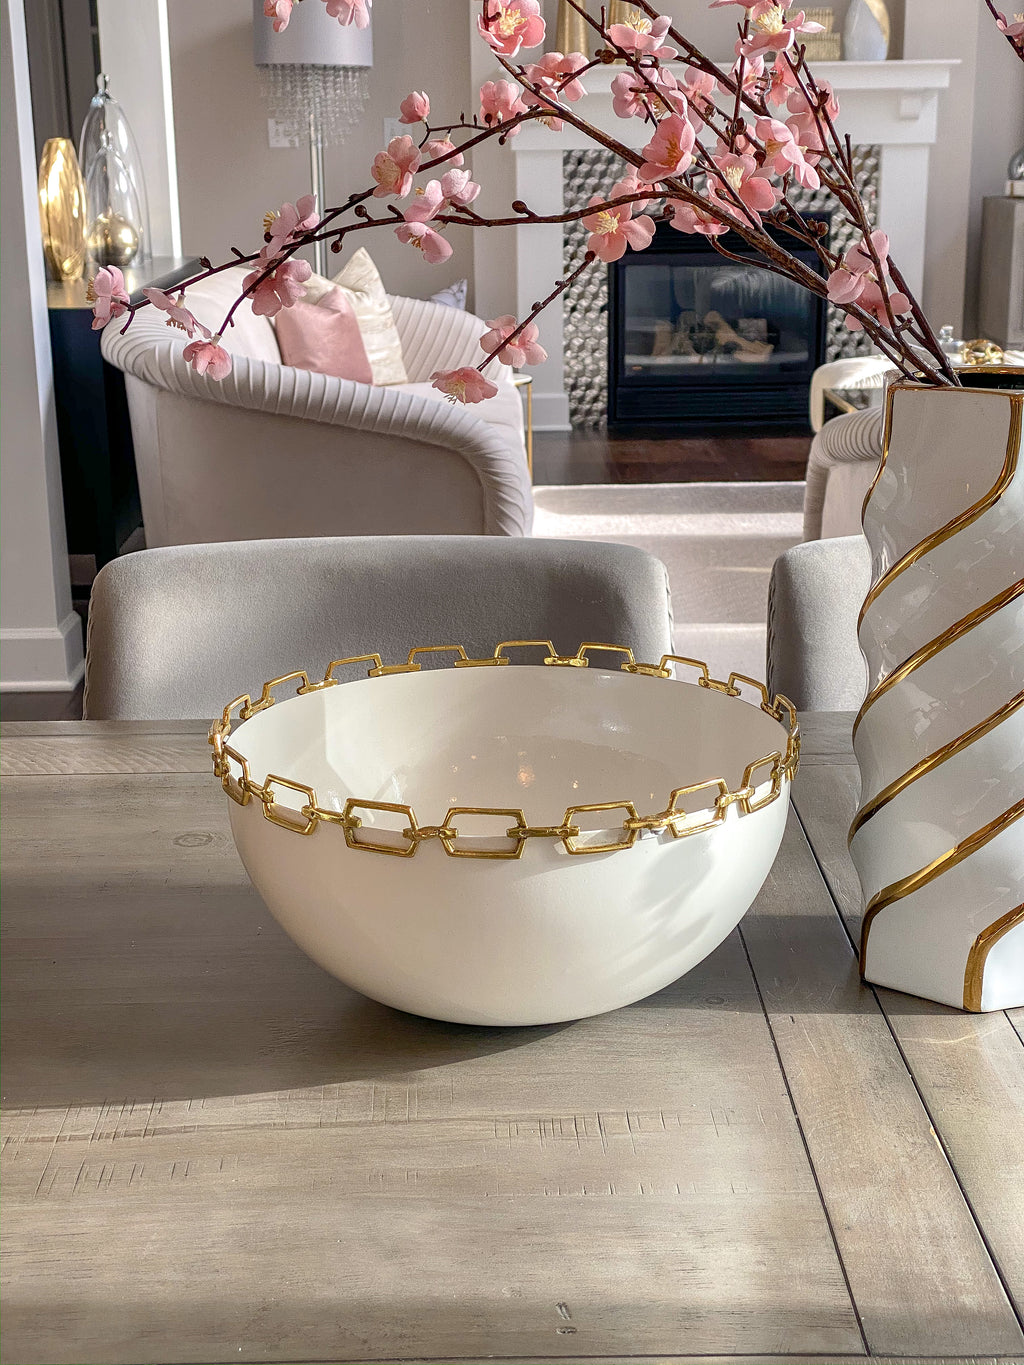 White Bowl with Gold Chain Rim-Inspire Me! Home Decor